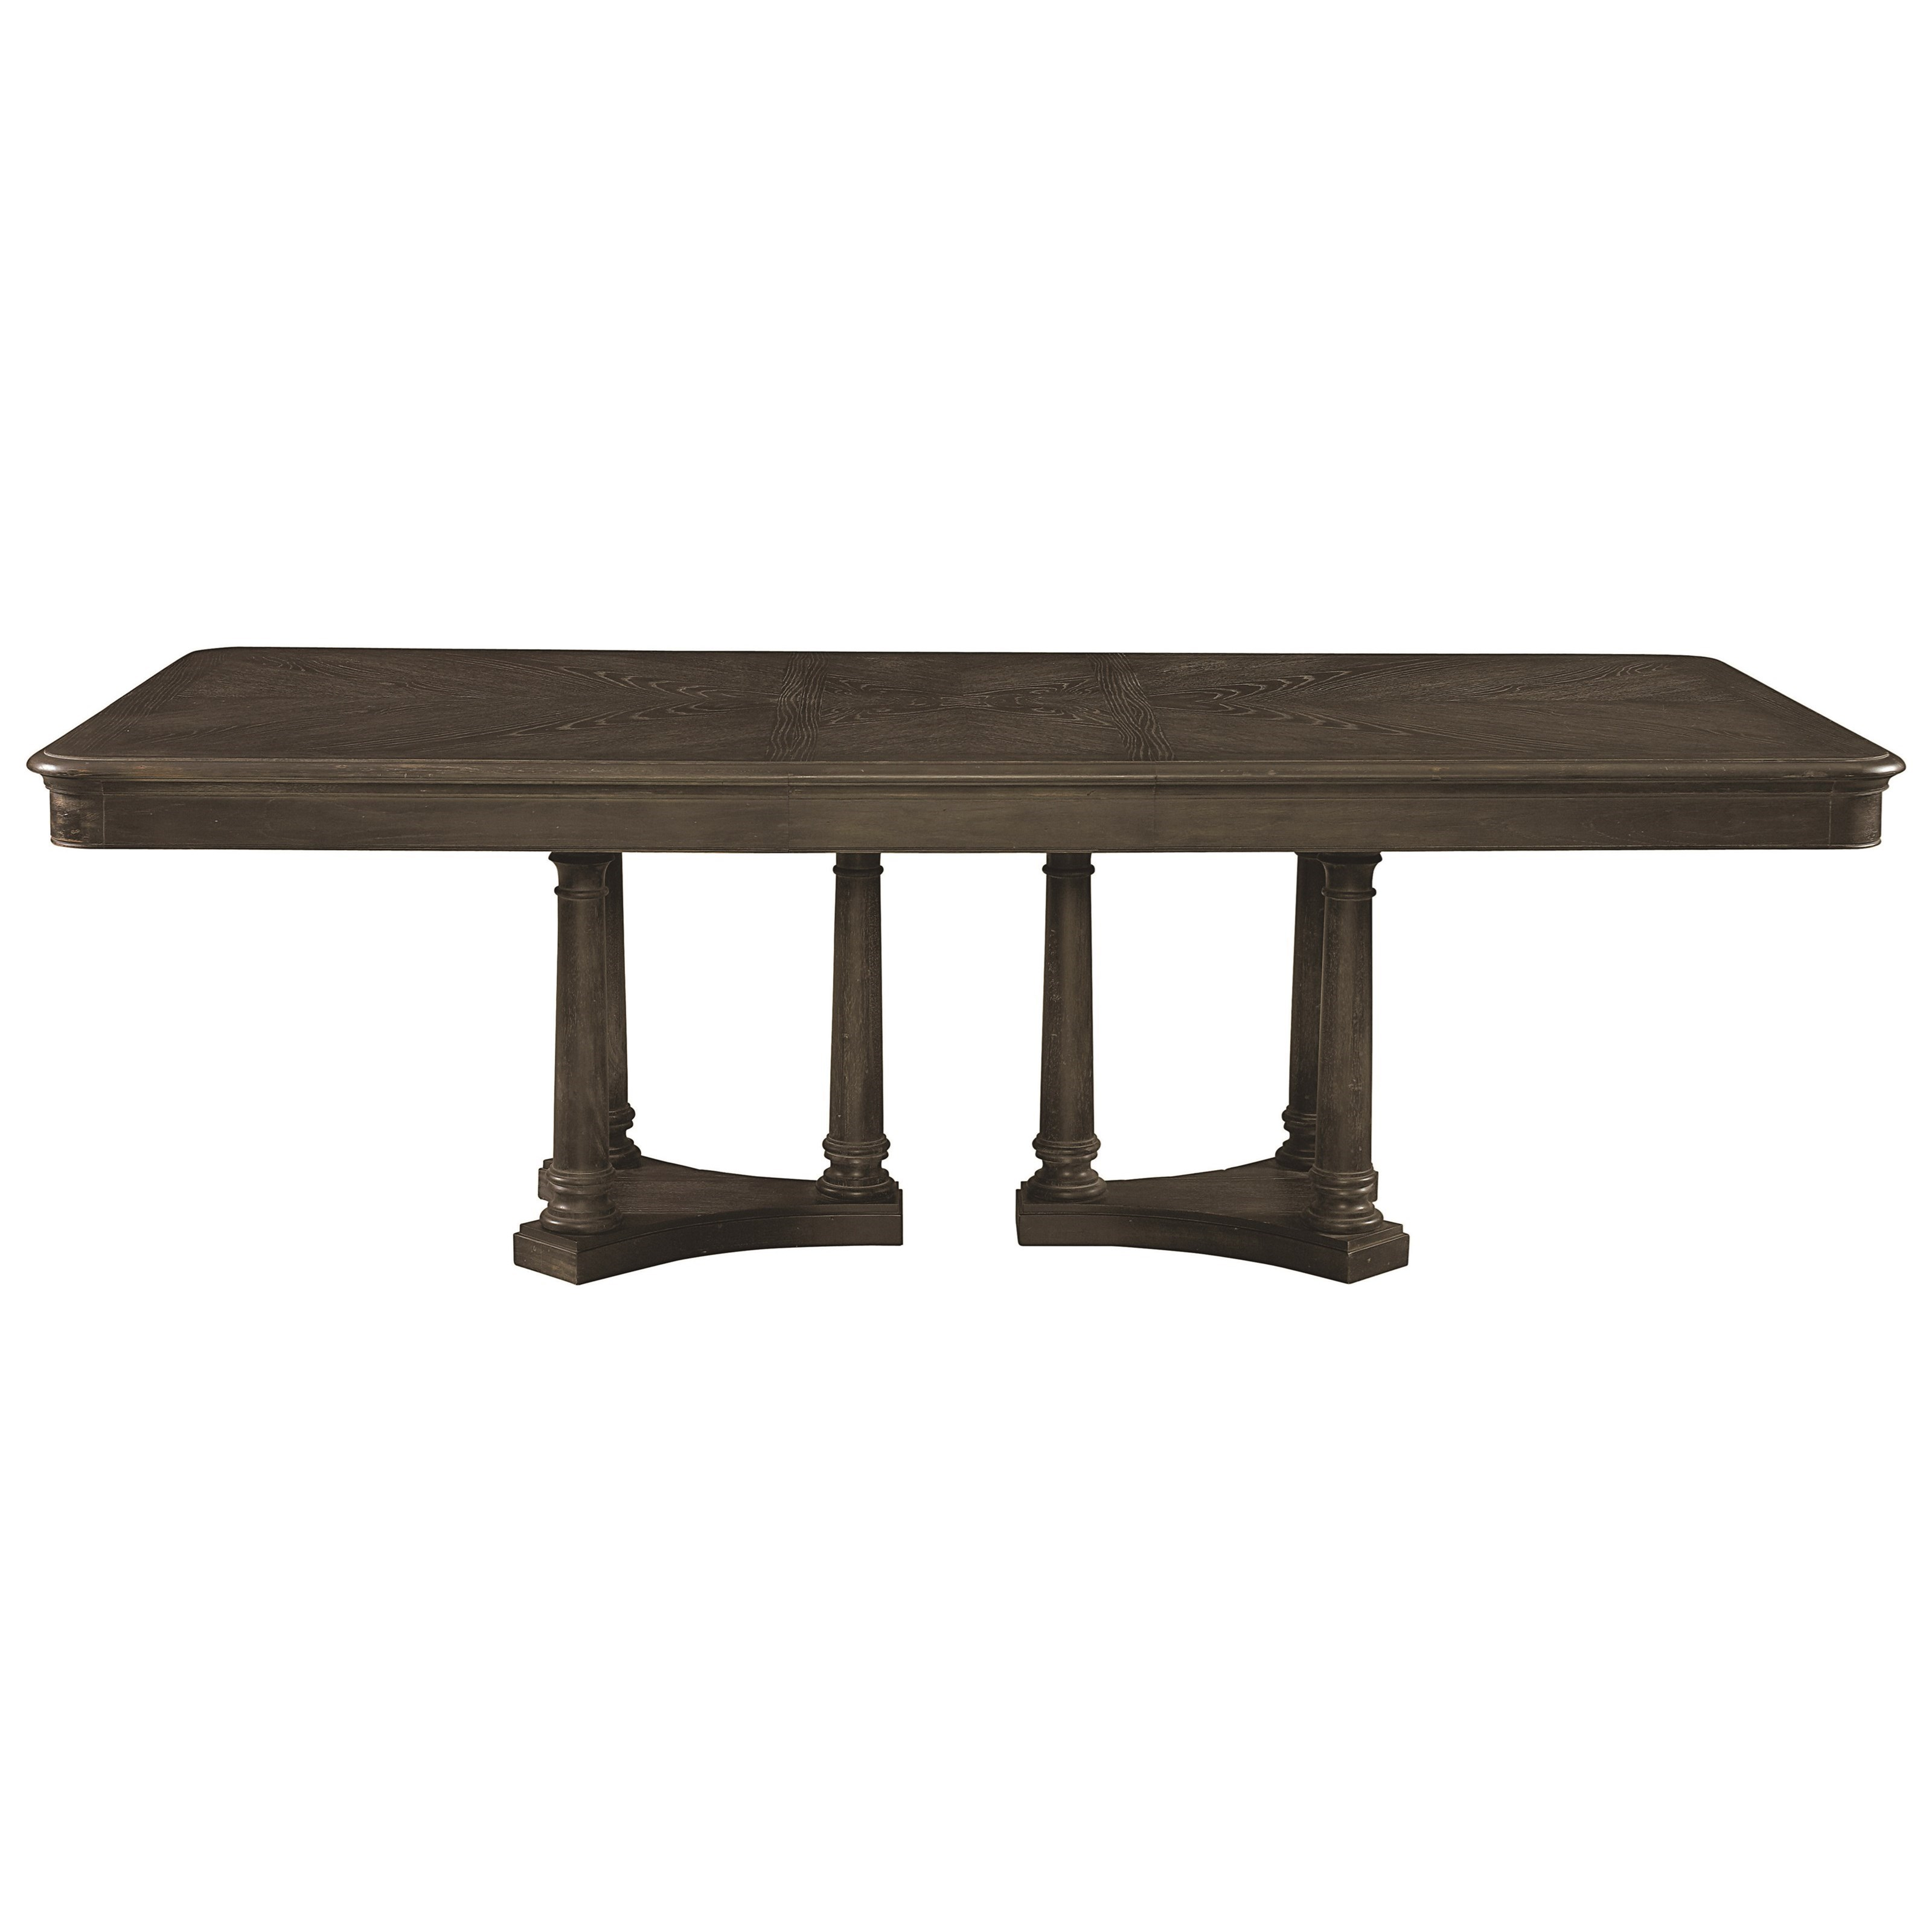 Bassett emporium 4513 4676 rectangular dining table seats for Dining table to seat 20